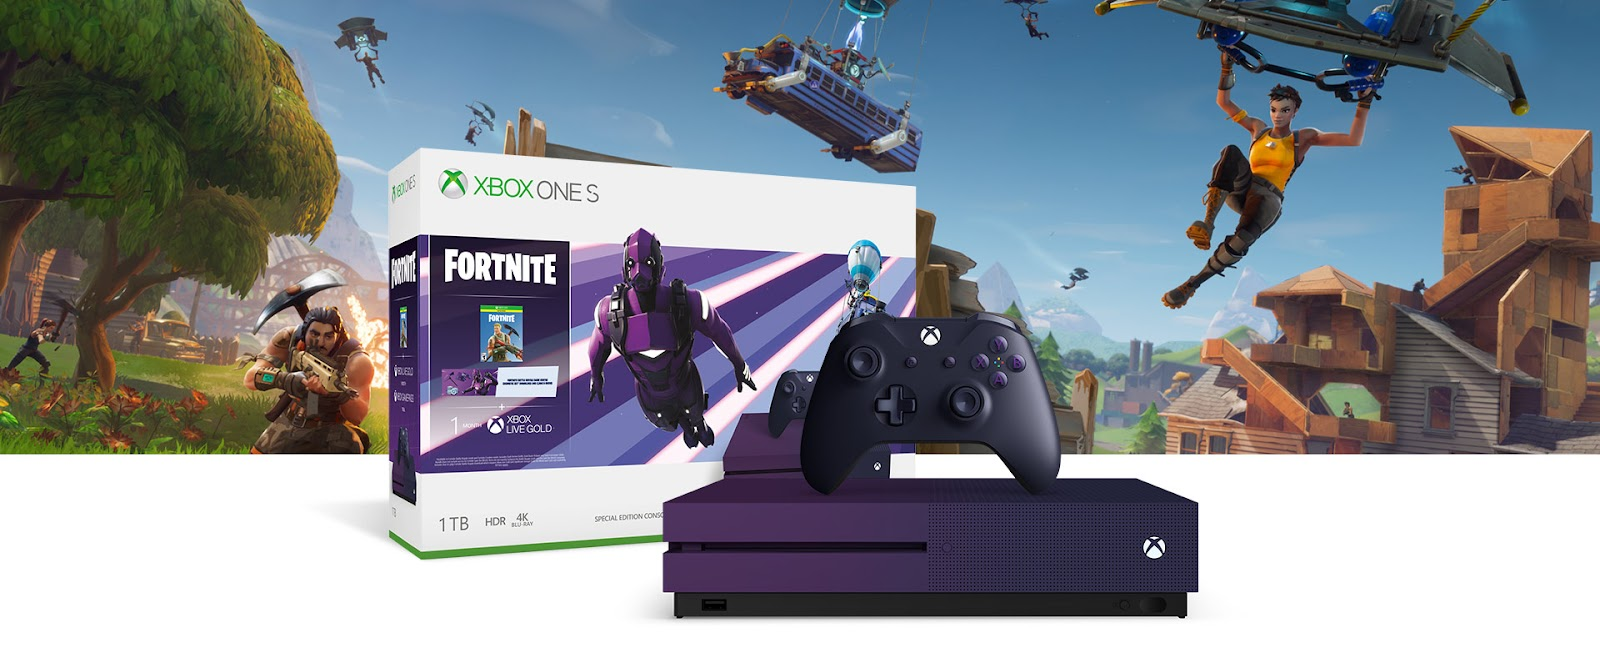 How to get every skin in Fortnite Xbox